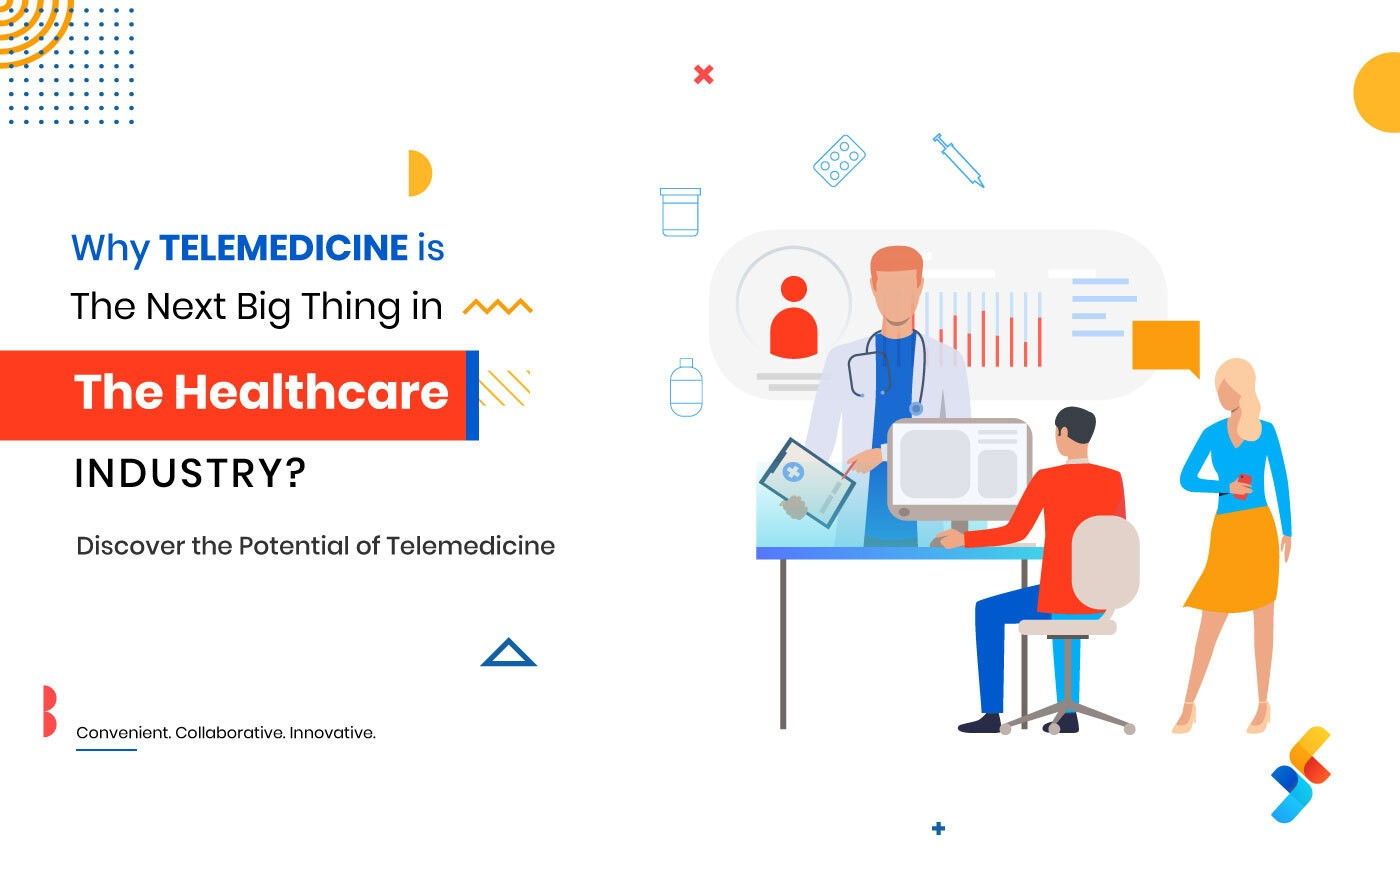 Why Telemedicine is the Next Big Thing in the Healthcare Industry?